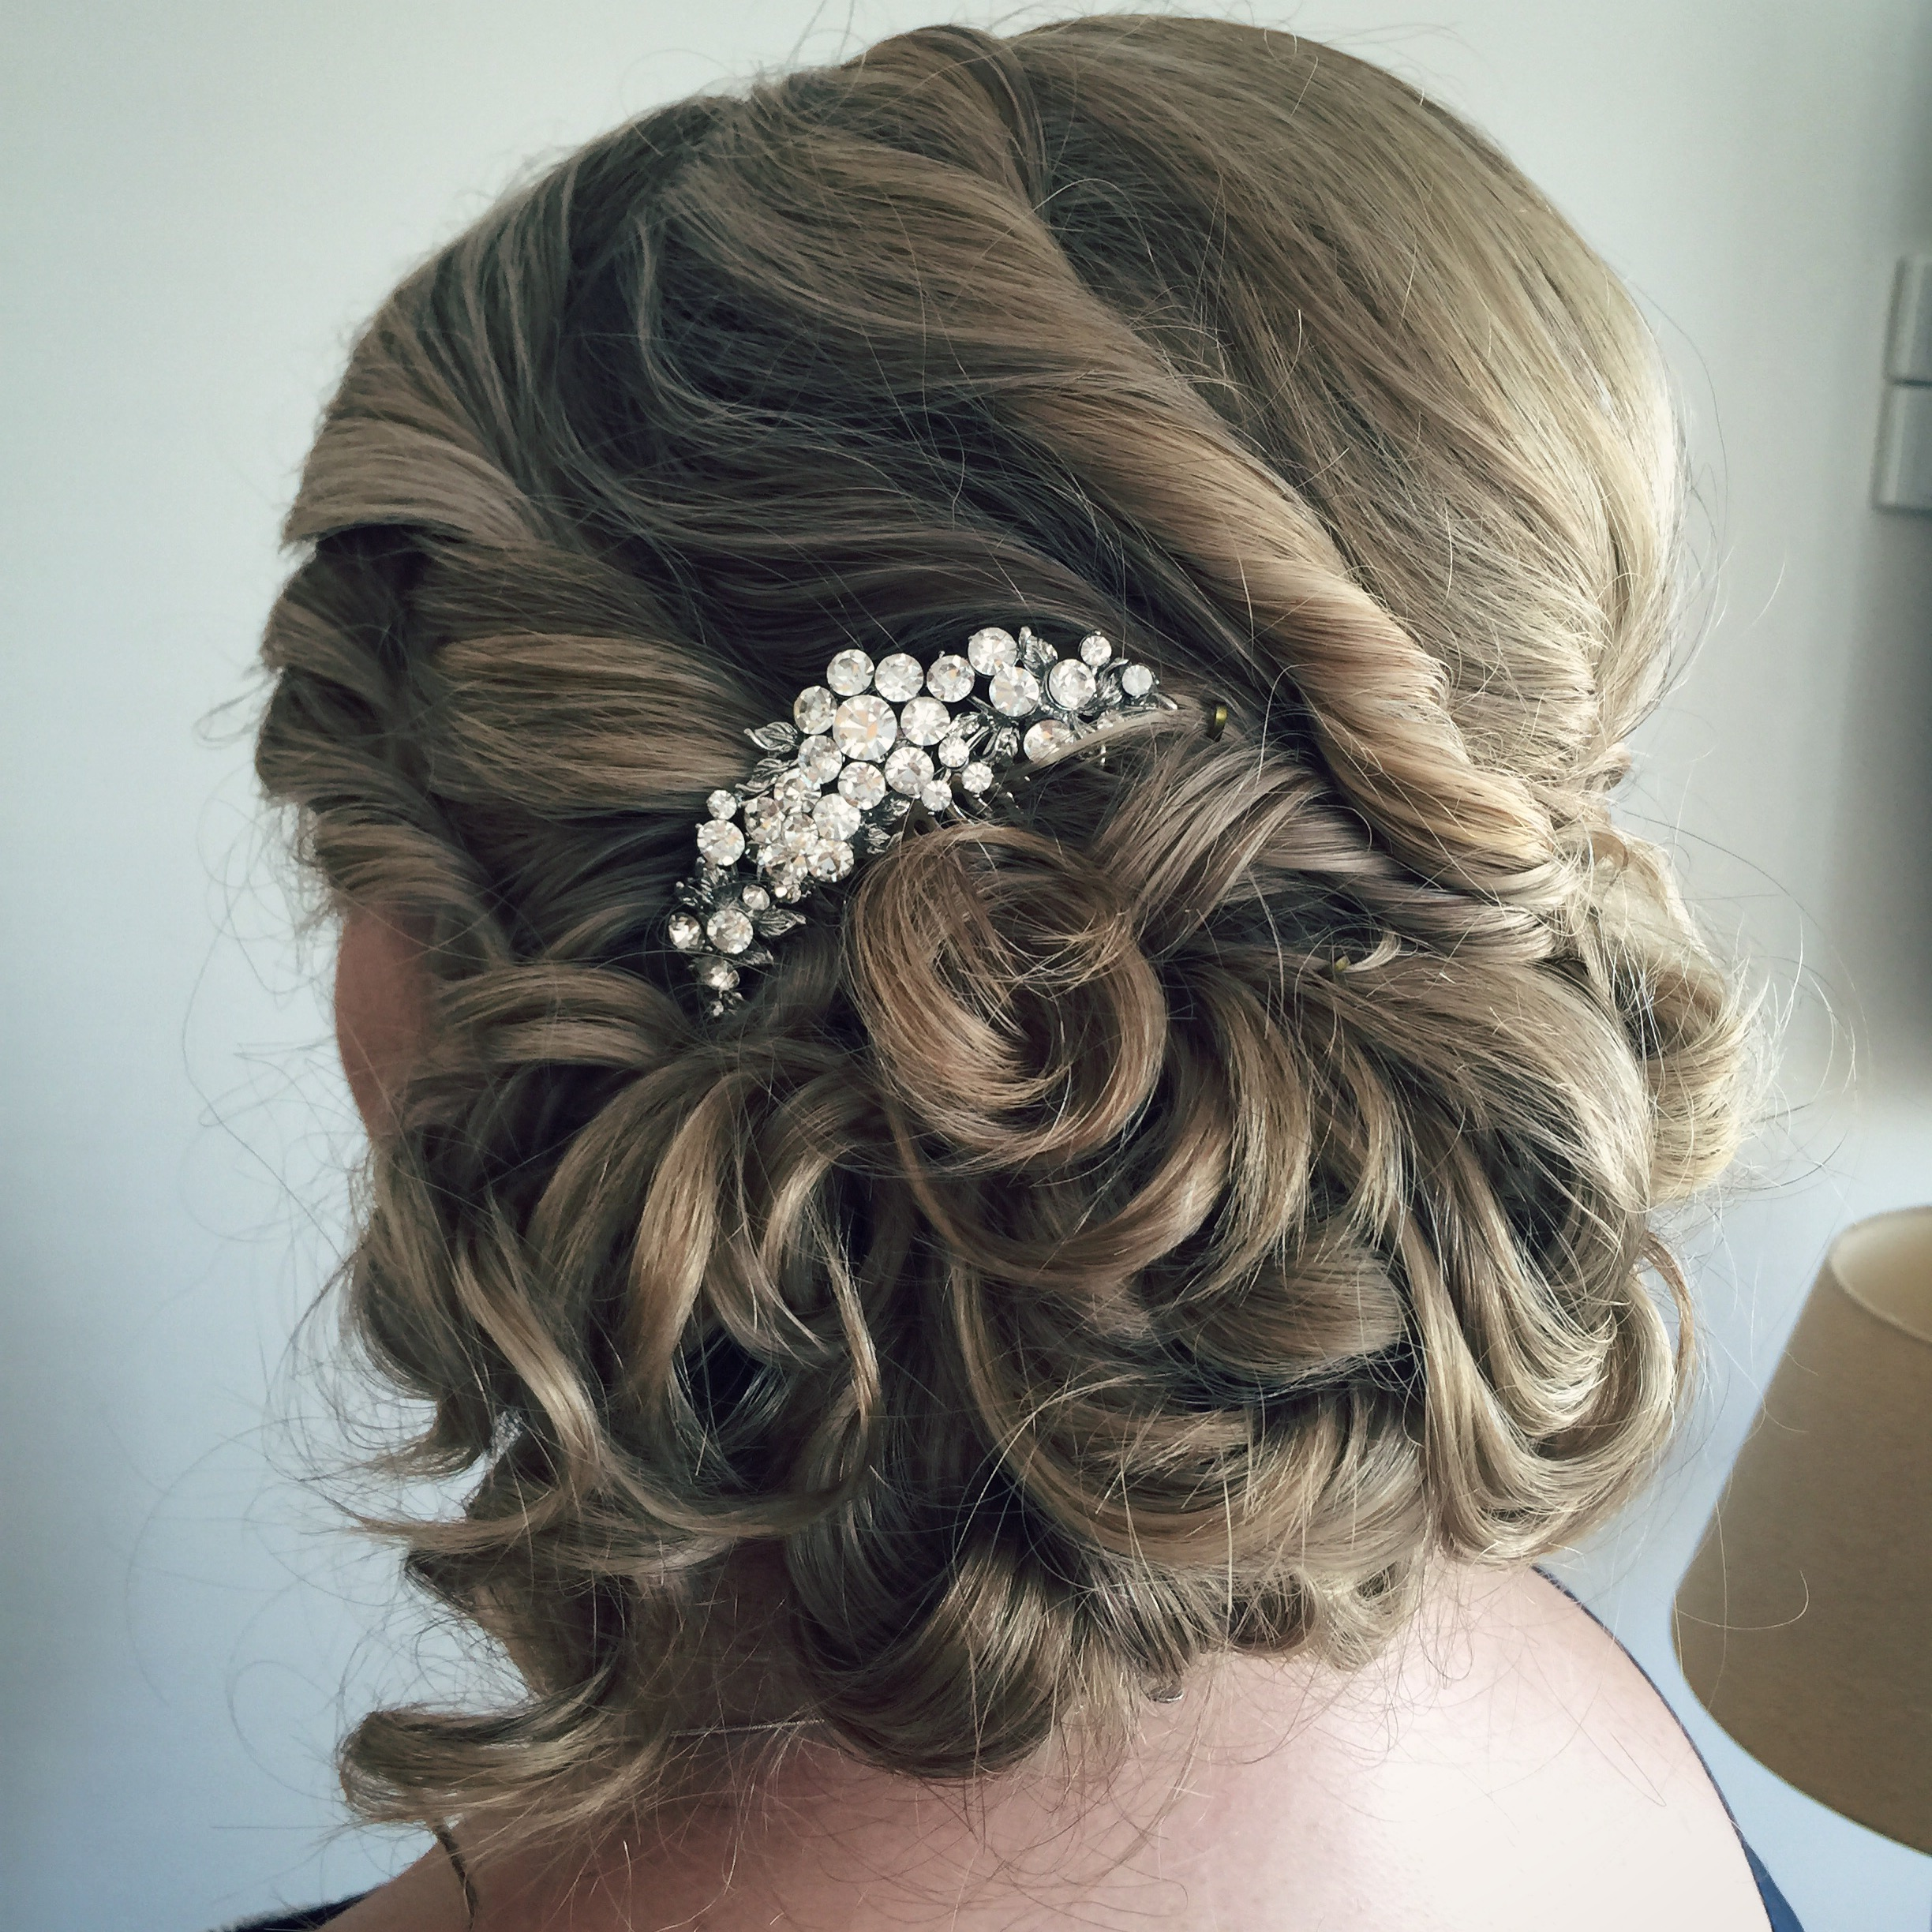 Brisbane bridal hair and makeup